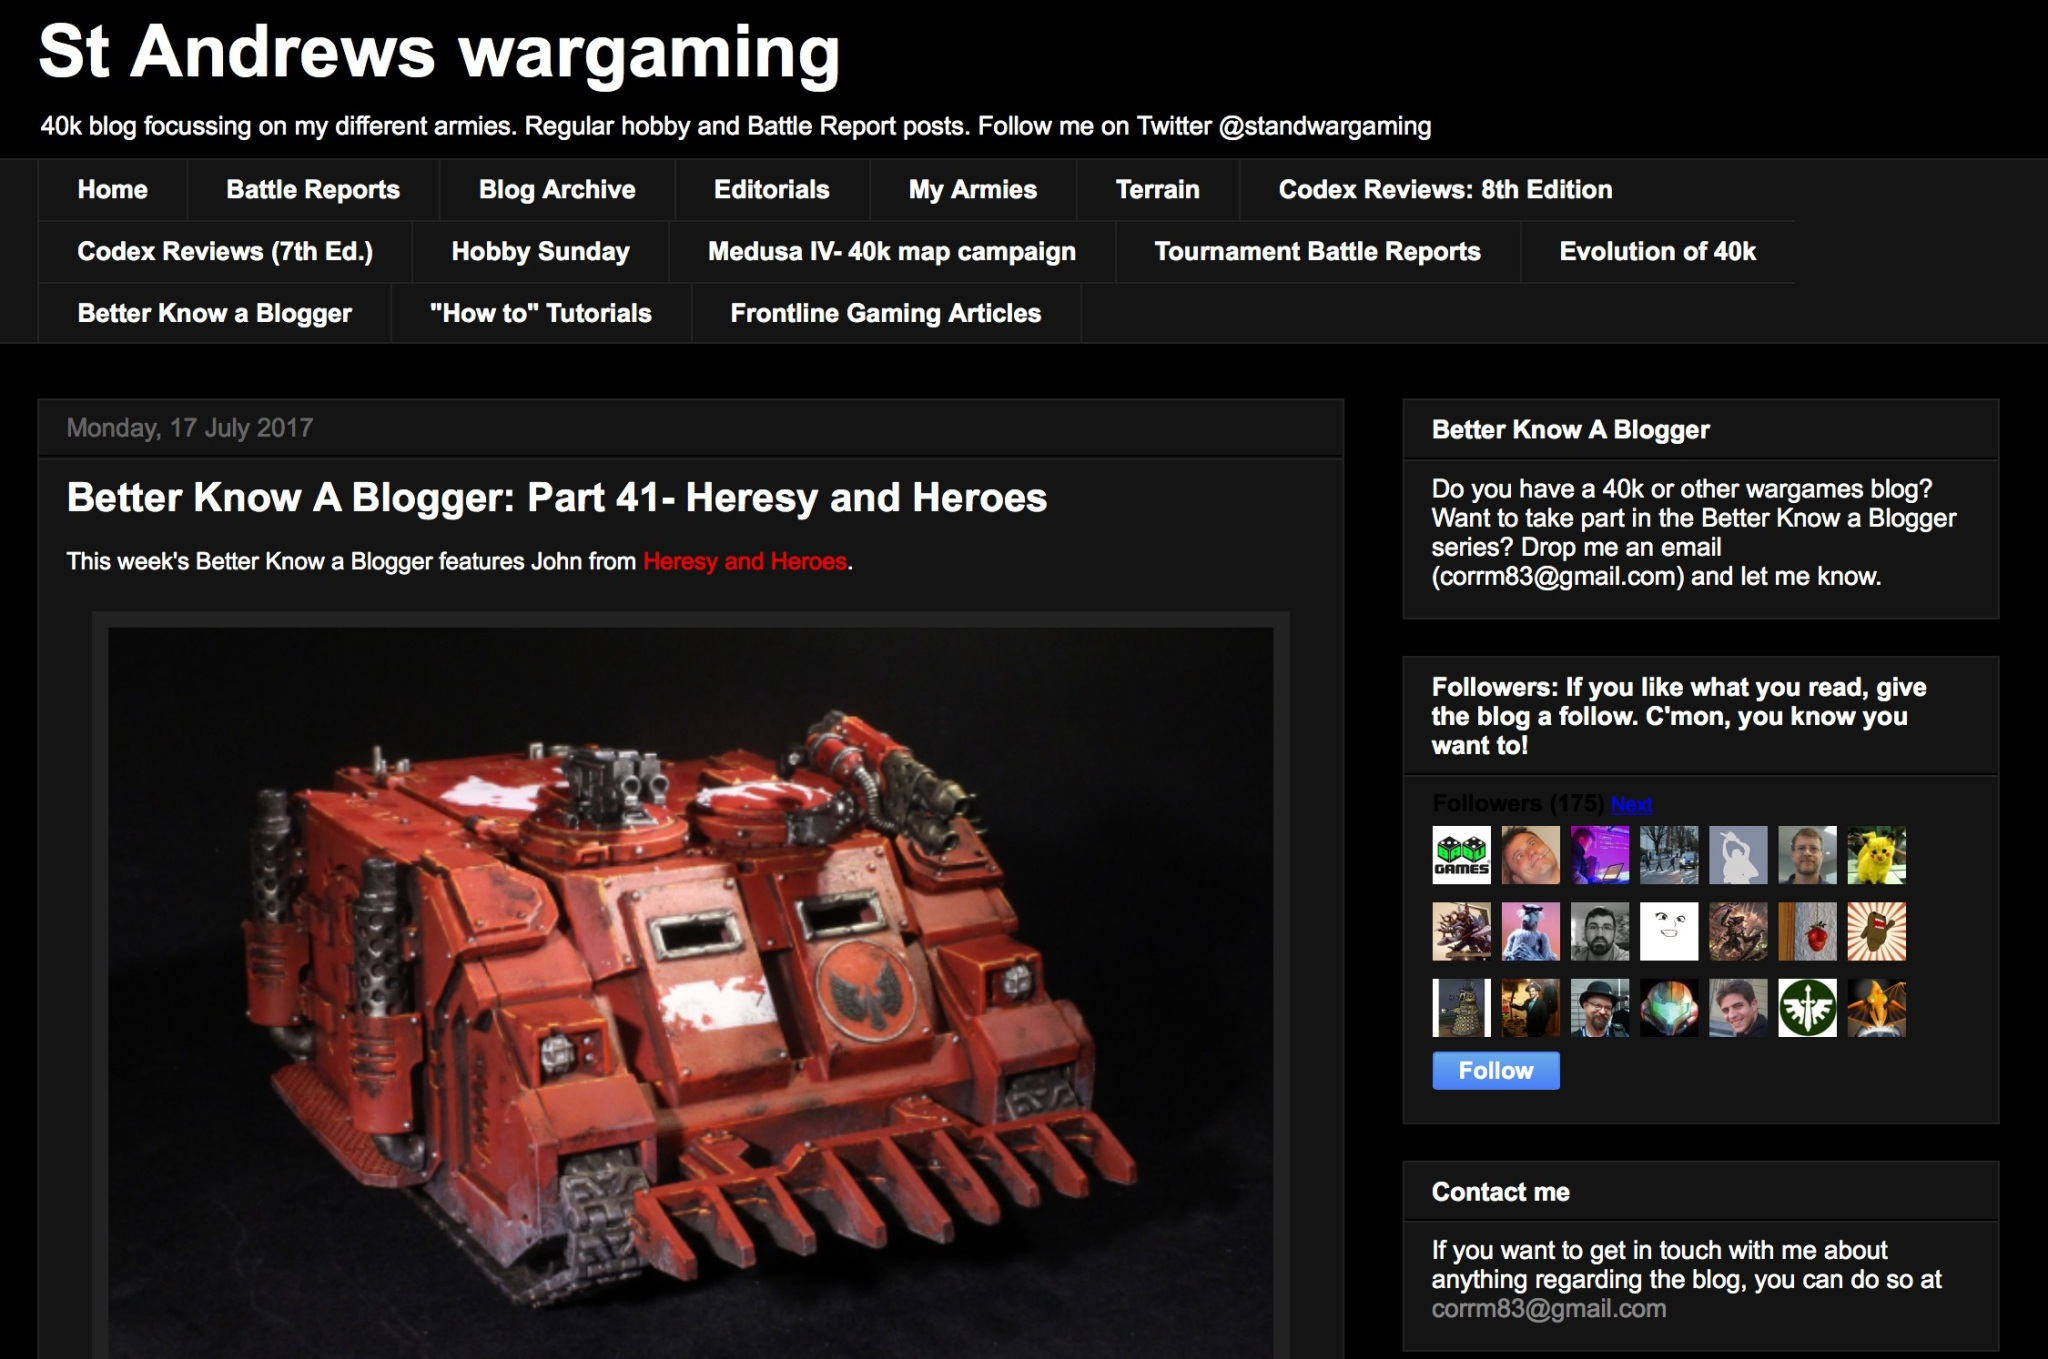 St_Andrews_wargaming__Better_Know_A_Blogger__Part_41-_Heresy_and_Heroes